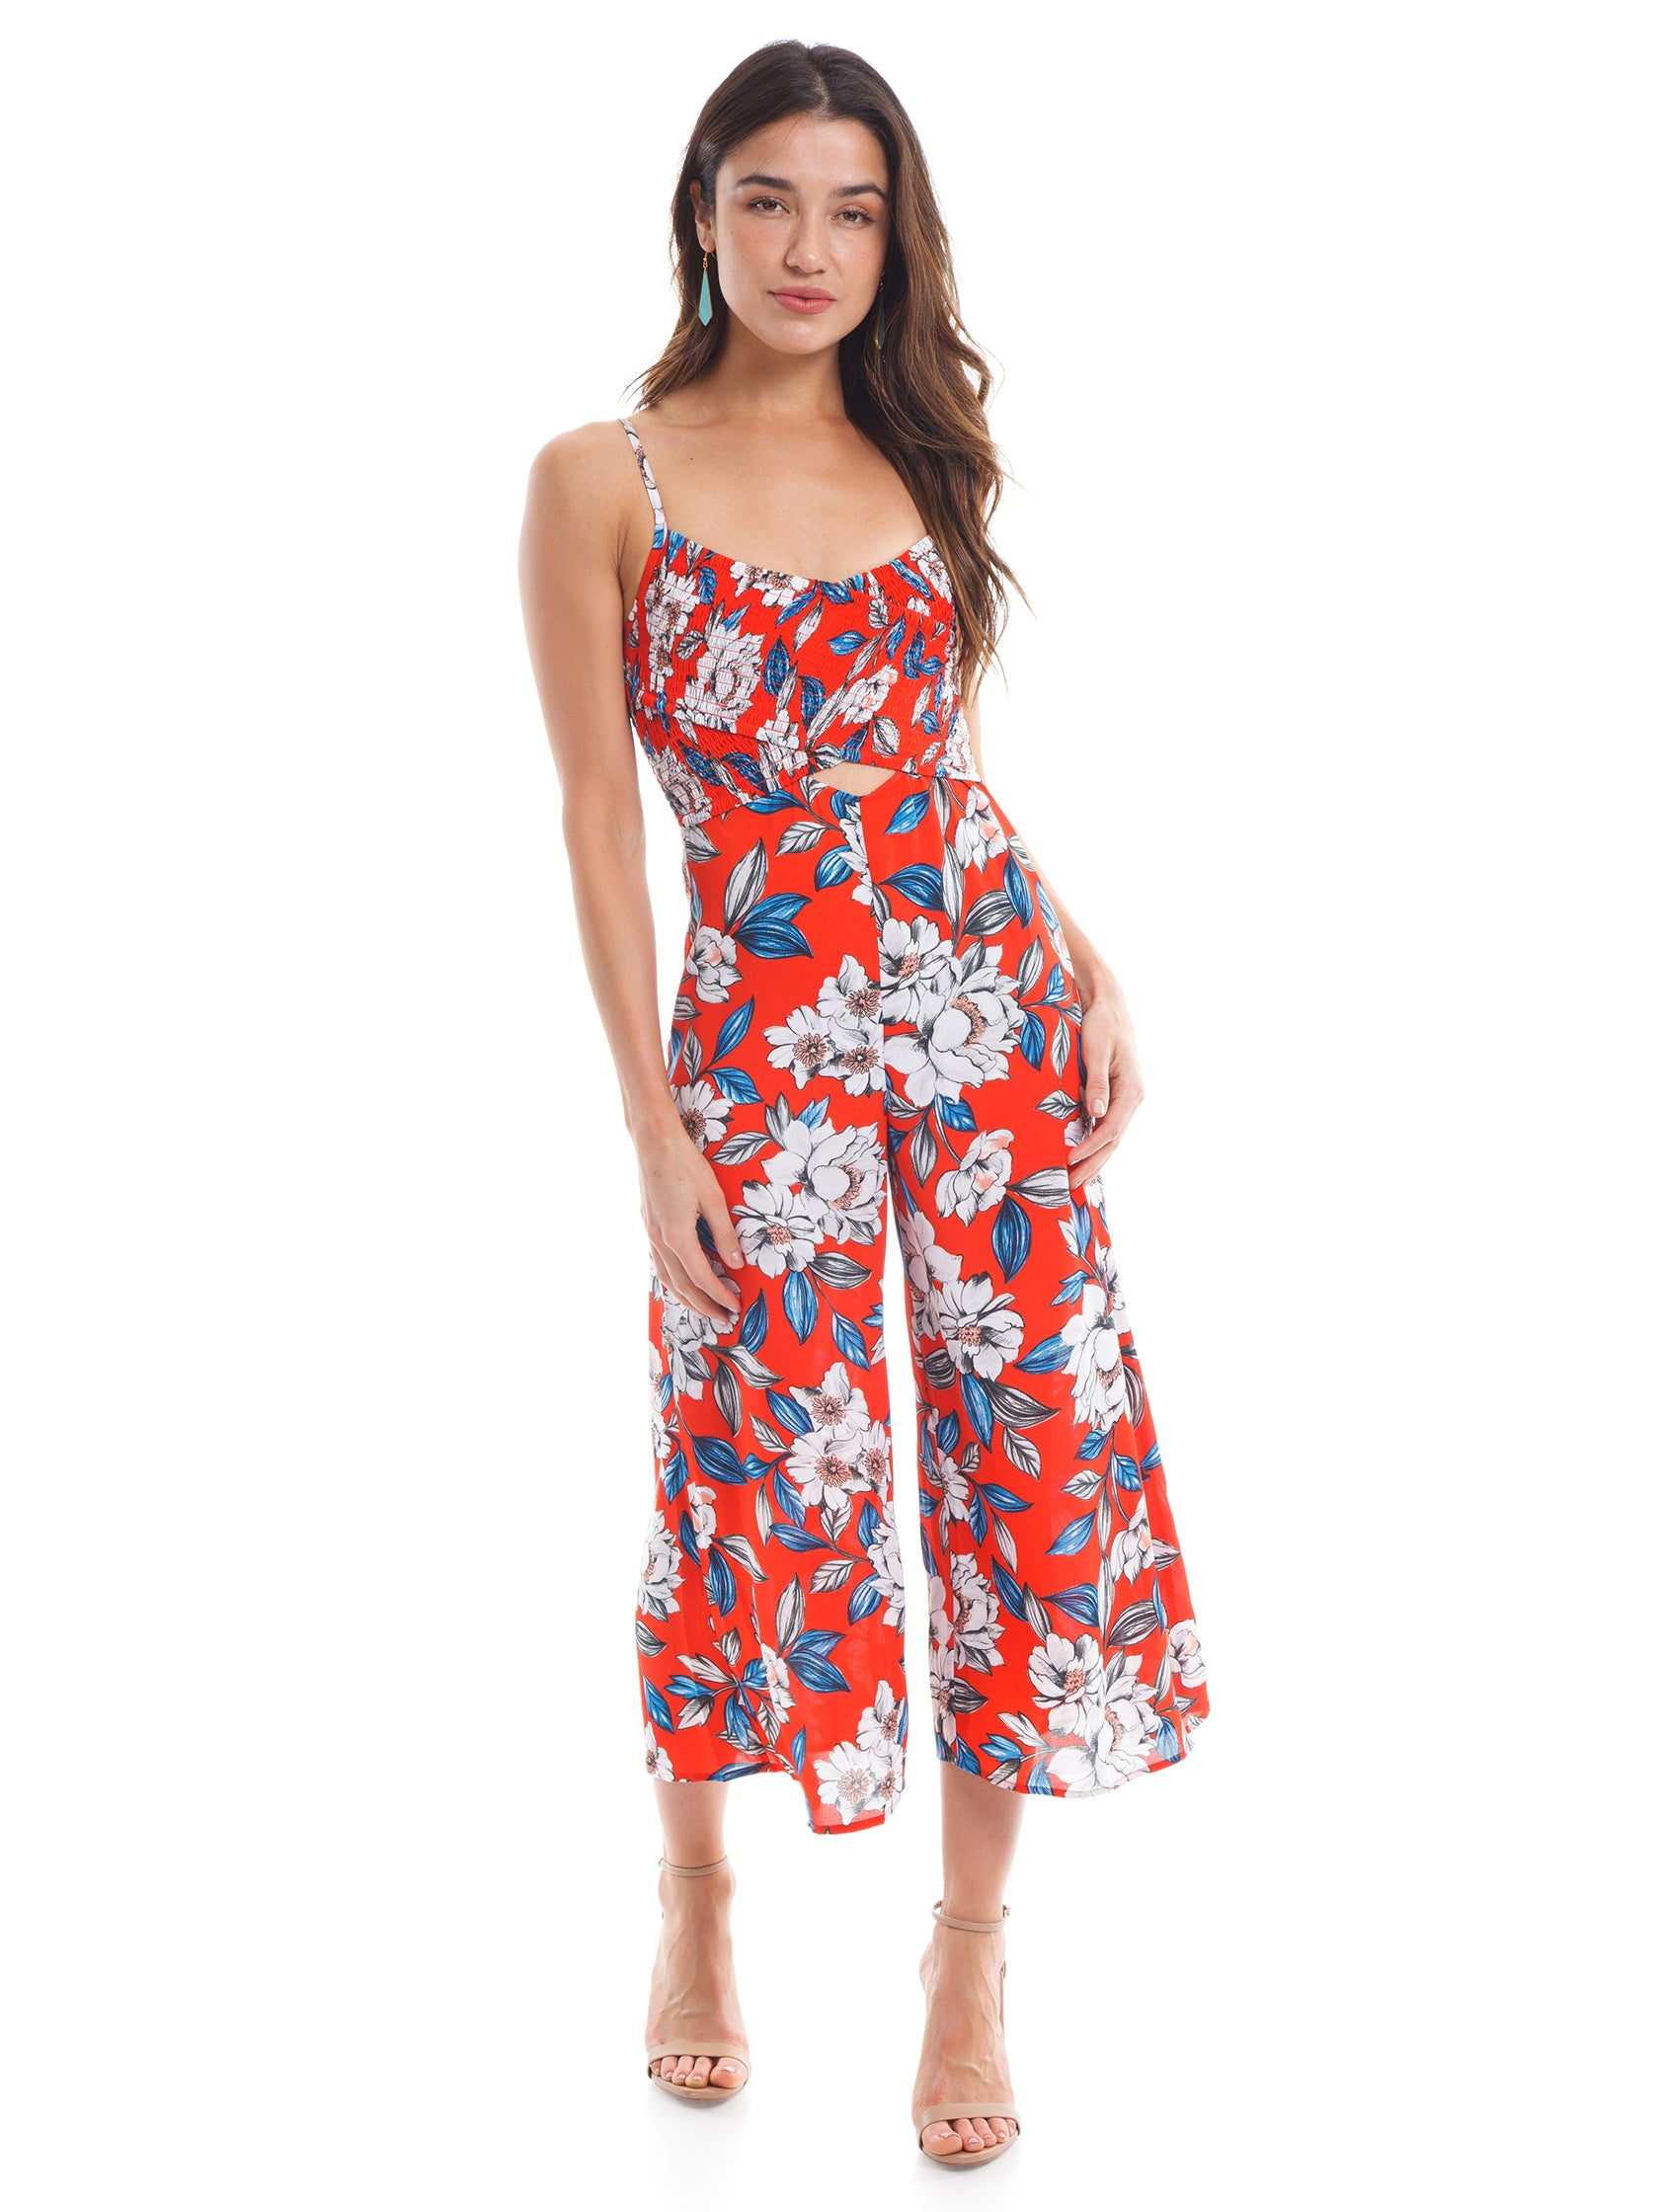 Girl outfit in a jumpsuit rental from Ali & Jay called Full Bloom Jumpsuit